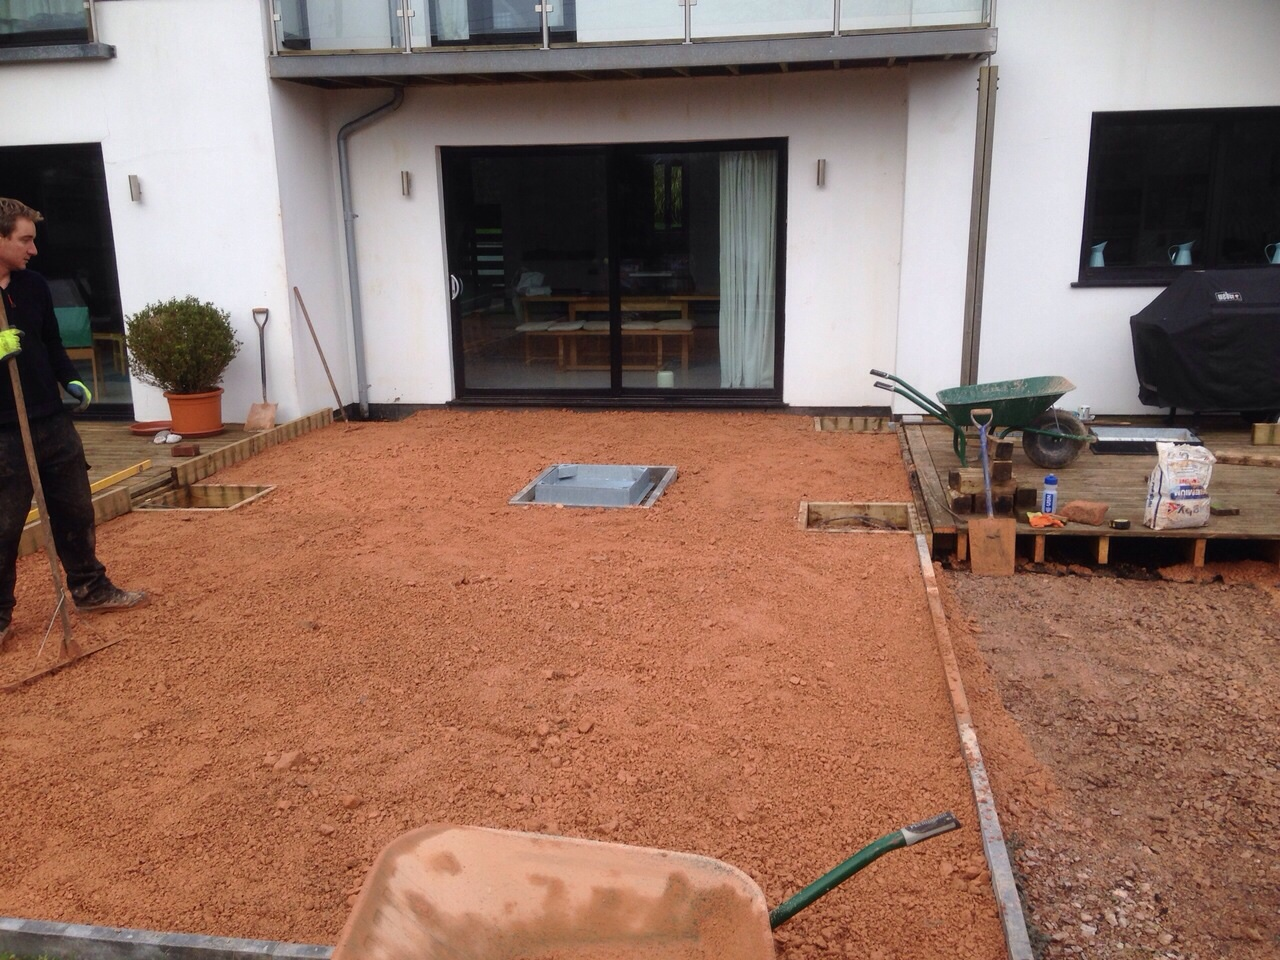 Lympstone garden prepped and ready